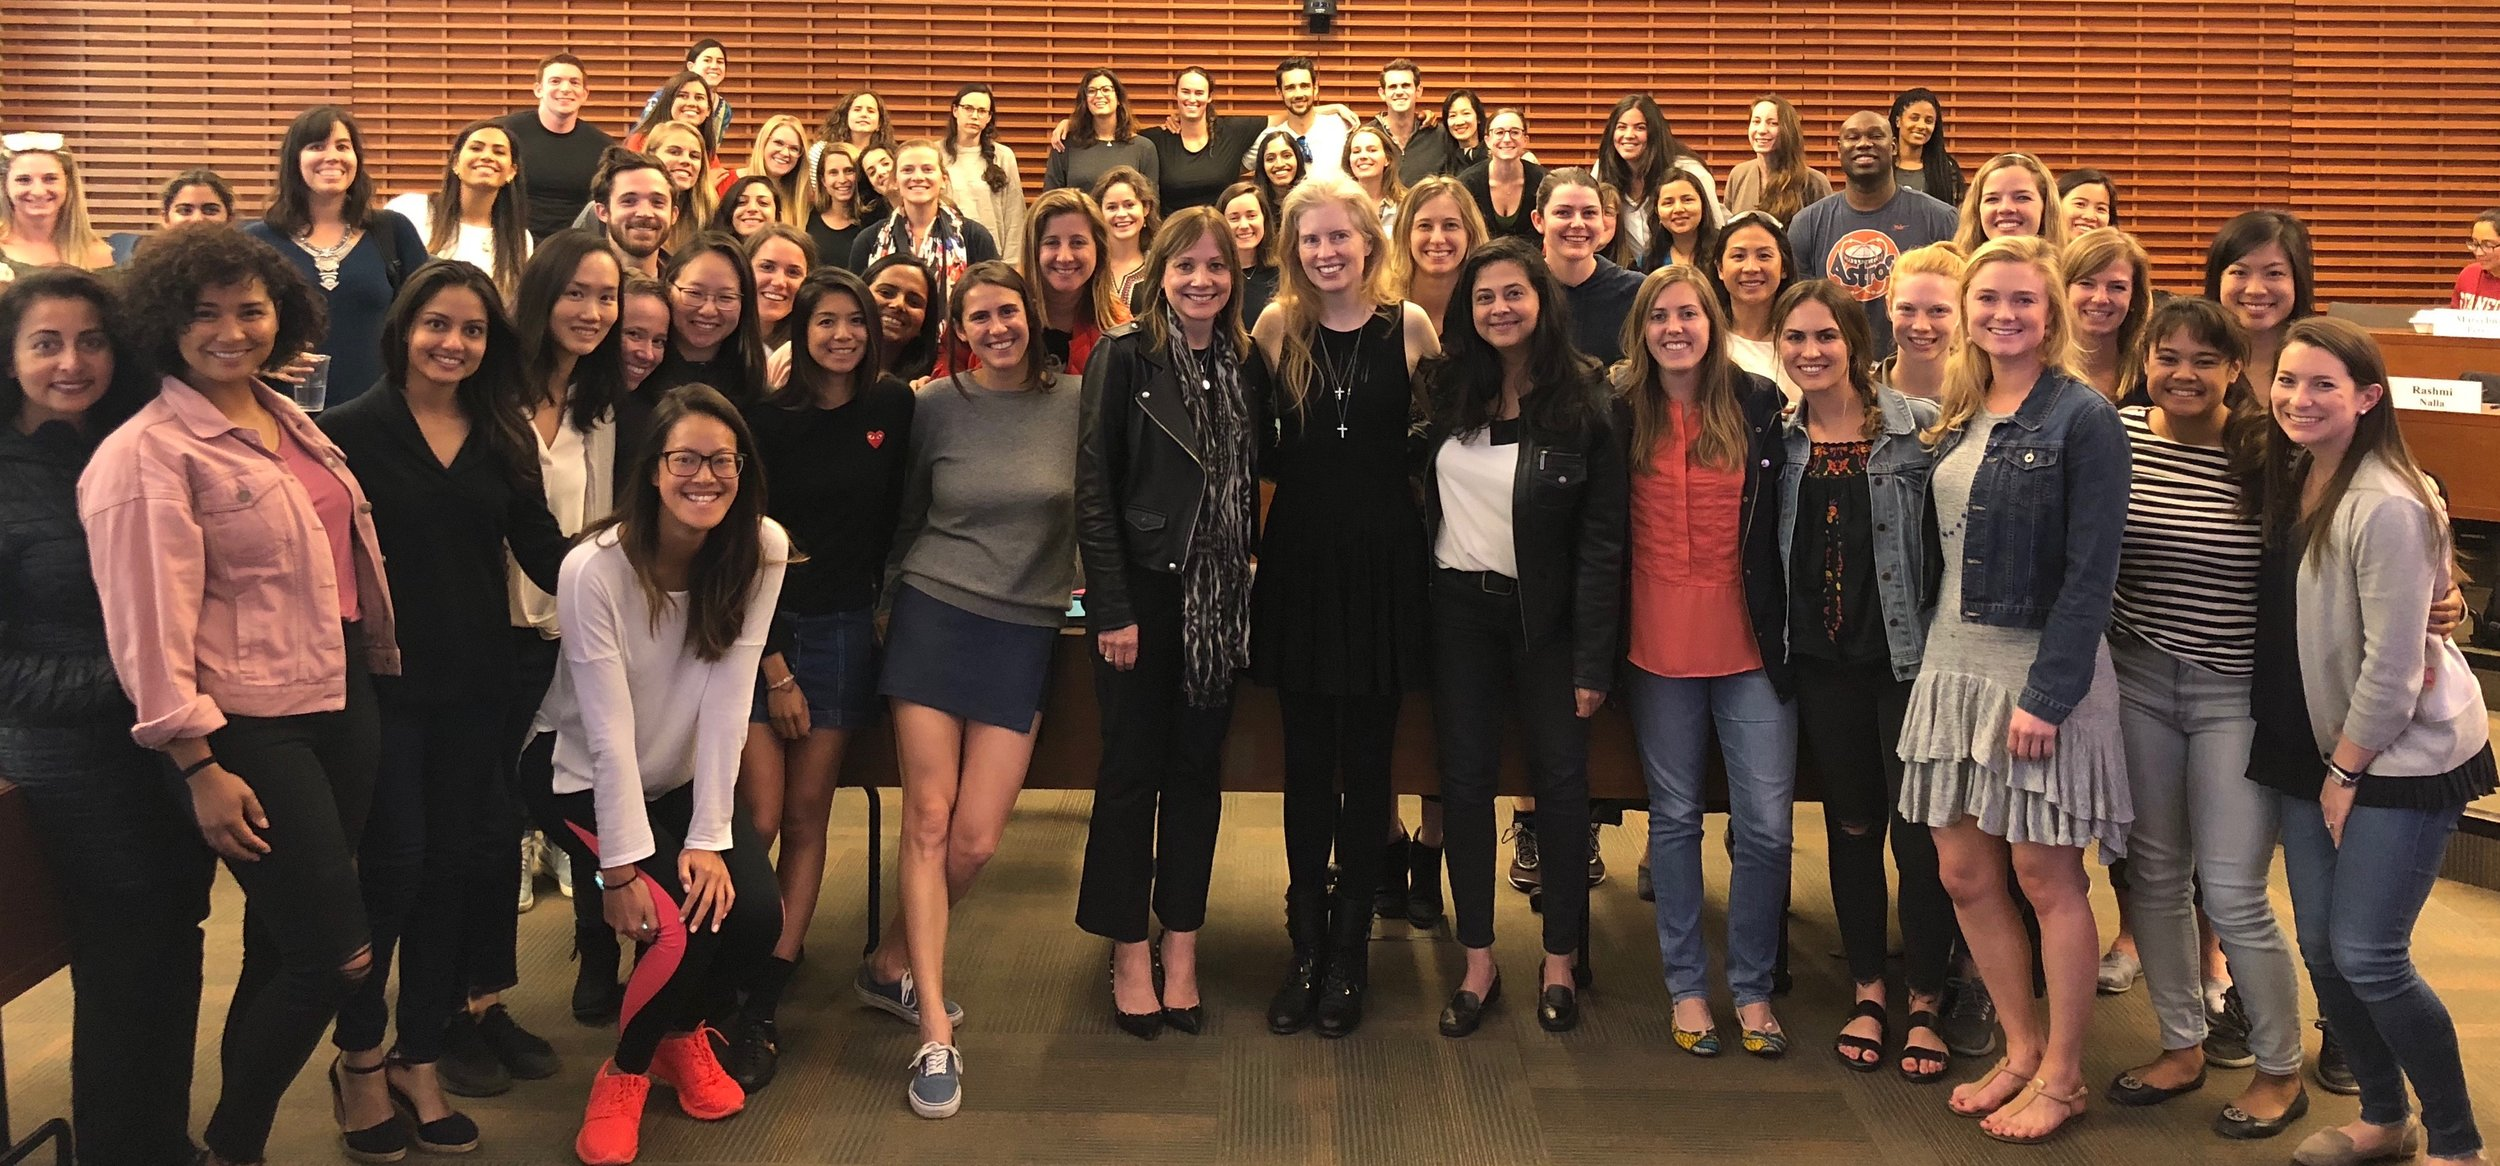 LAAF.org Founder and CEO Laura Arrillaga-Andreessen pictured with her amazing Power of You: Women in Leadership students at Stanford Graduate School of Business with General Motors Chair and CEO Mary Barra